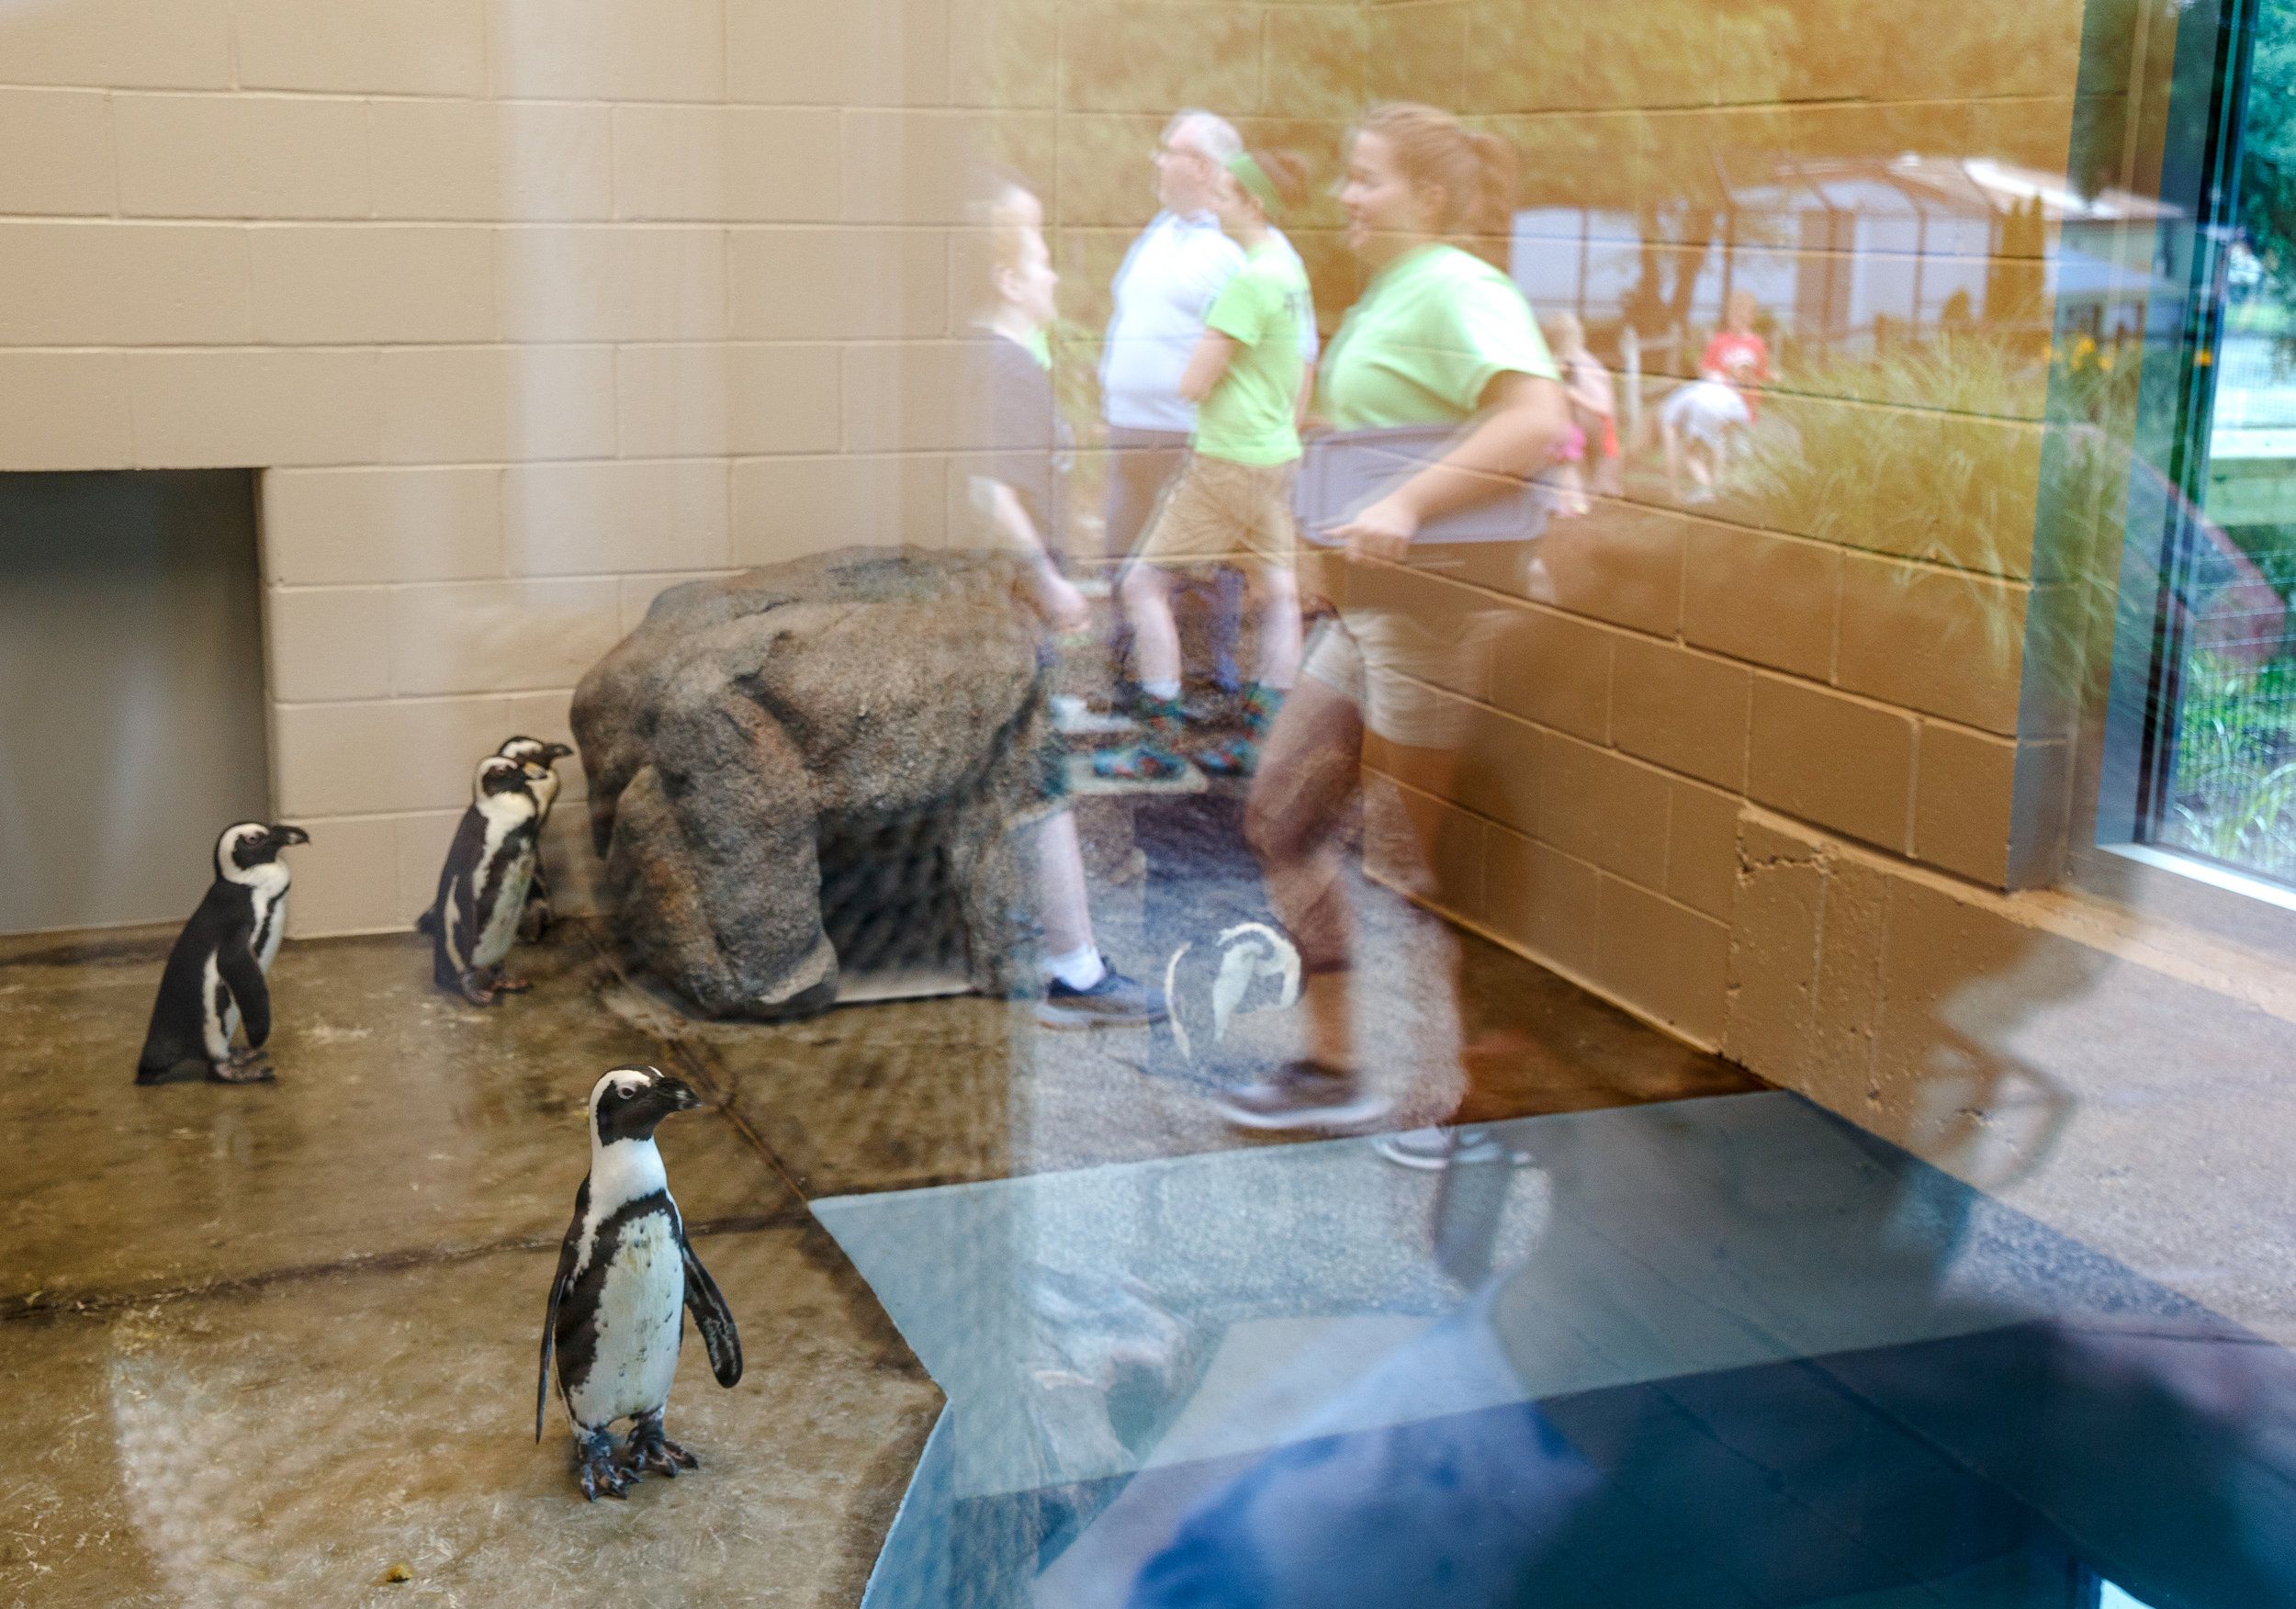 The five African penguins pear out through the twenty feet of glass in their new enclosure the also allows visitors to see during the official opening of the new penguin building at the Henson Robinson Zoo, Saturday, June 9, 2018, in Springfield, Ill. The building has triple the space, going from 200 square feet to about 600 square feet with more than 20 feet of glass to view the five penguins and their indoor pool.[Justin L. Fowler/The State Journal-Register]